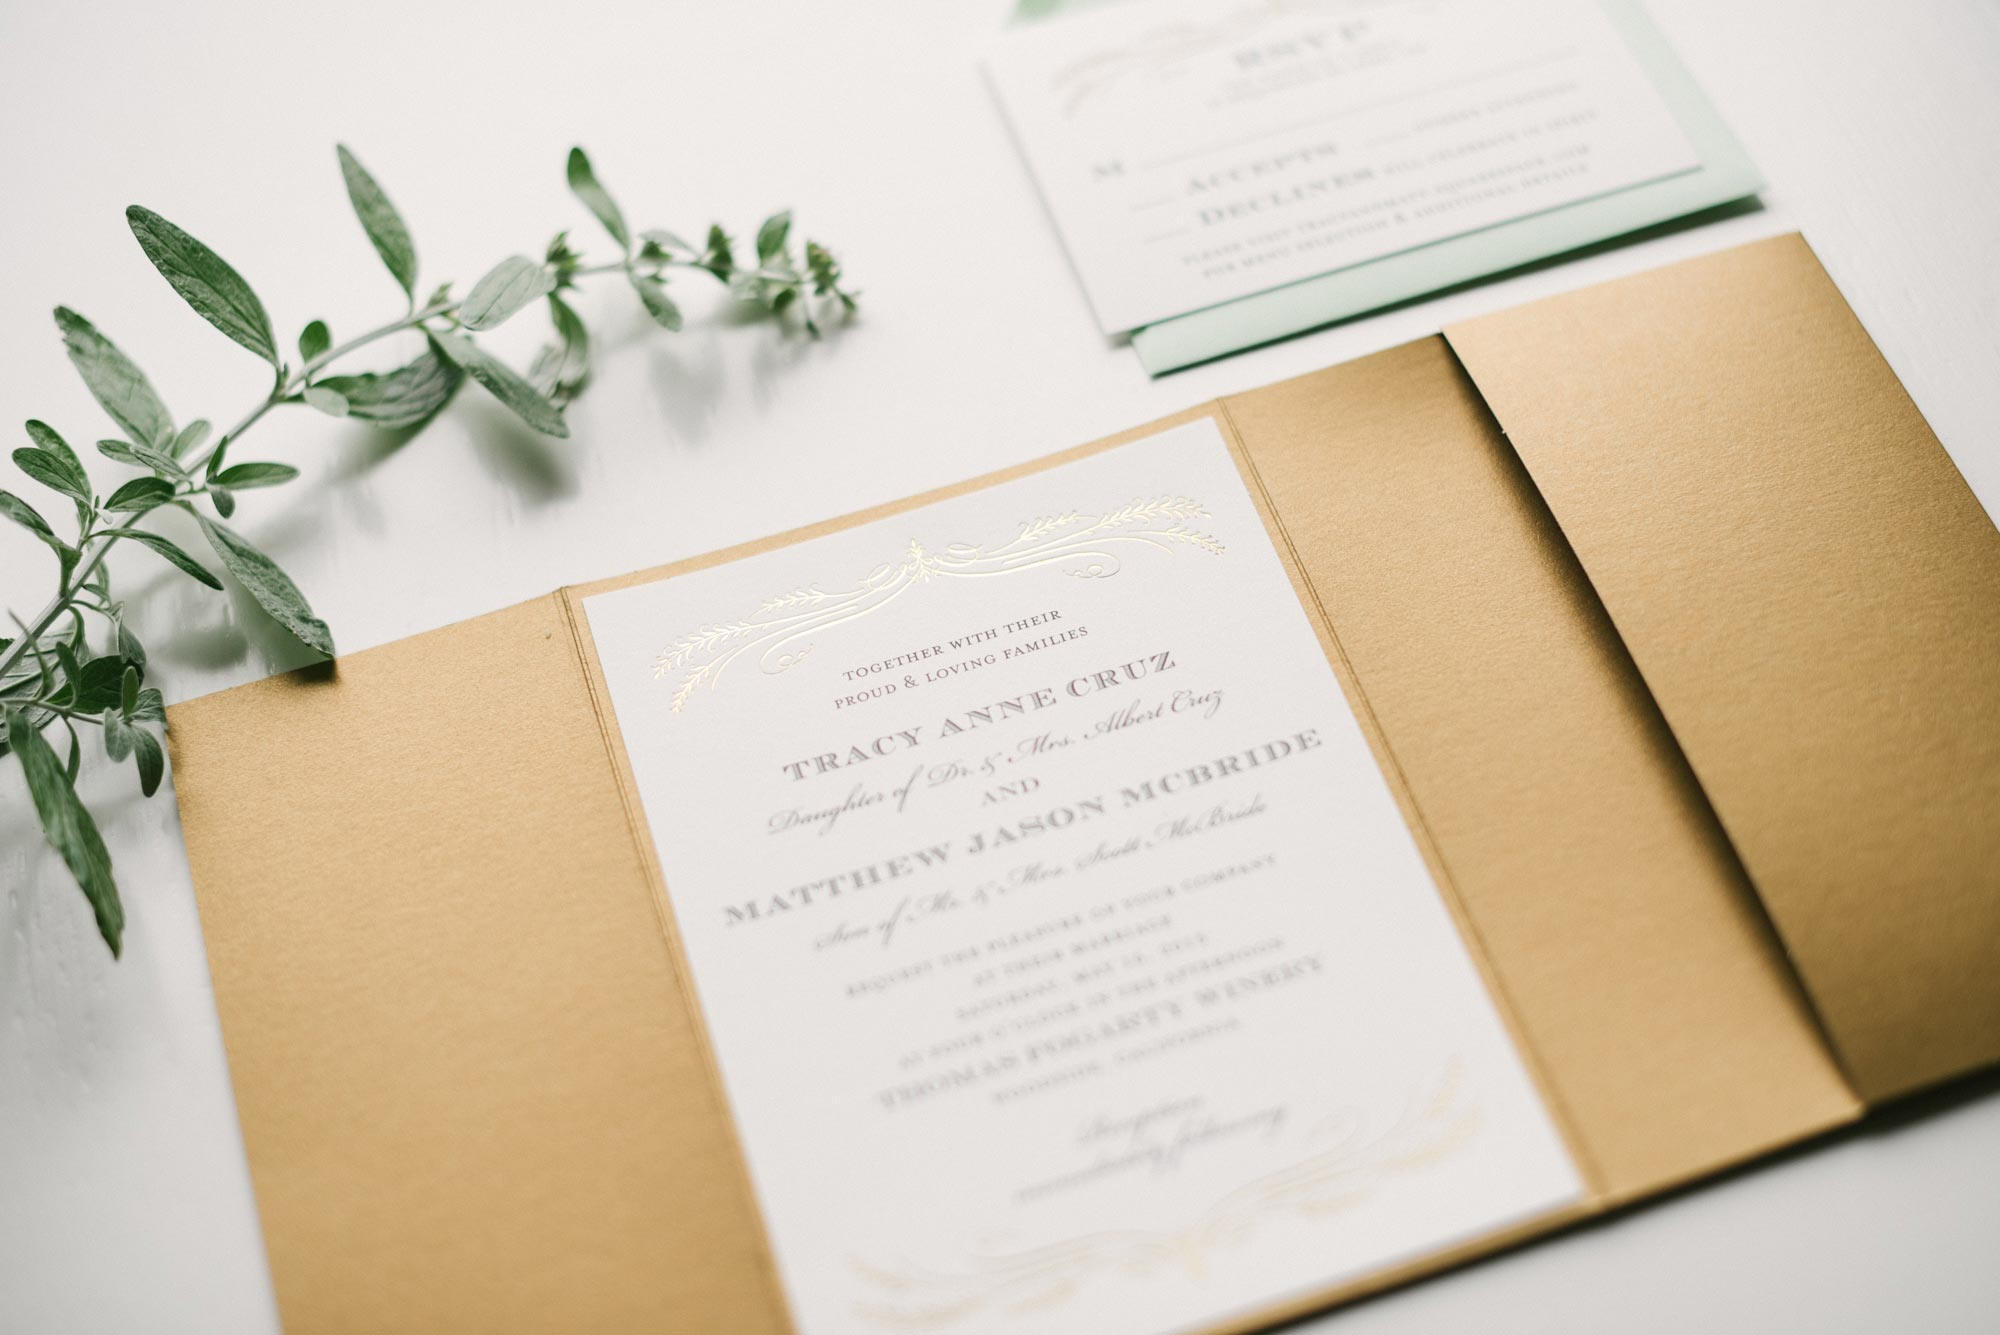 Weddings Archives - Page 4 of 20 - PictilioPictilio | Page 4